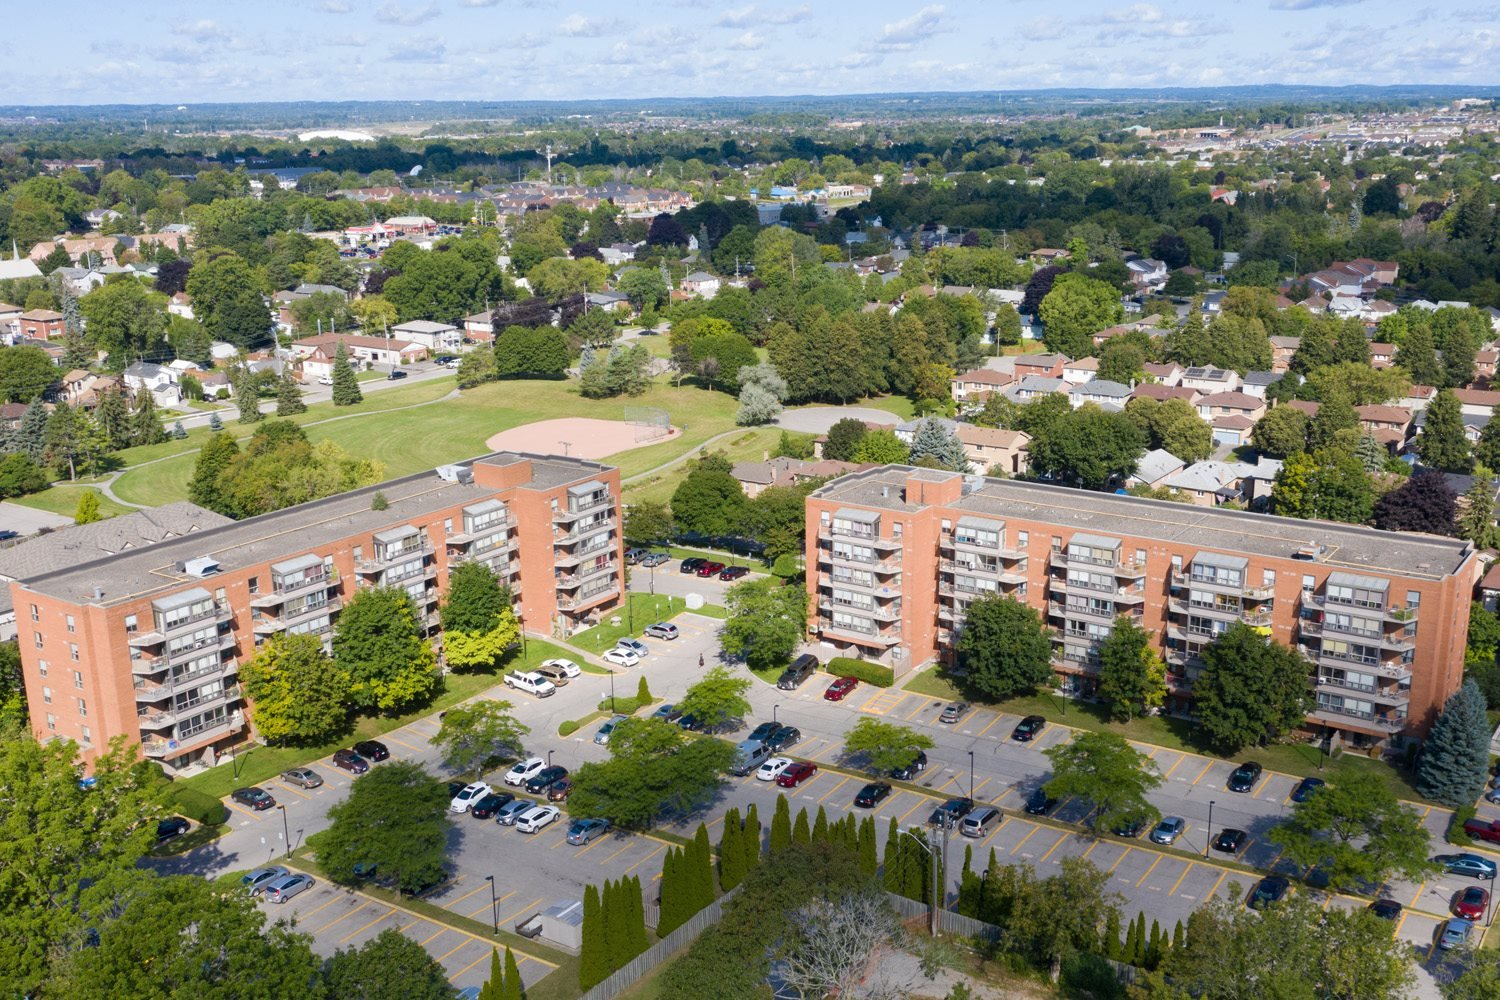 Regency Place drone image of exterior of building in Whitby, ON